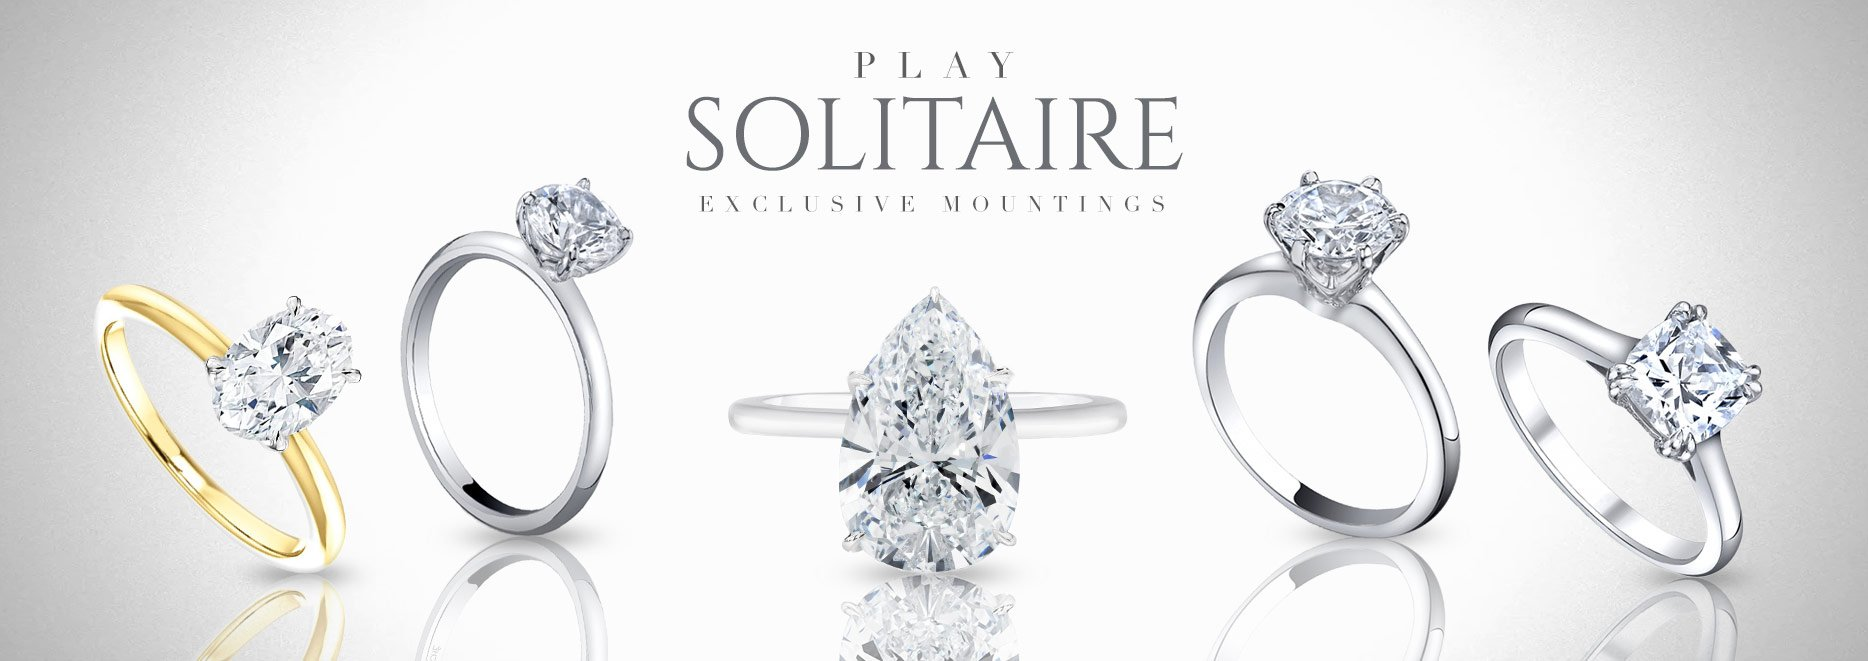 group of diamond white and yellow gold solitaire rings